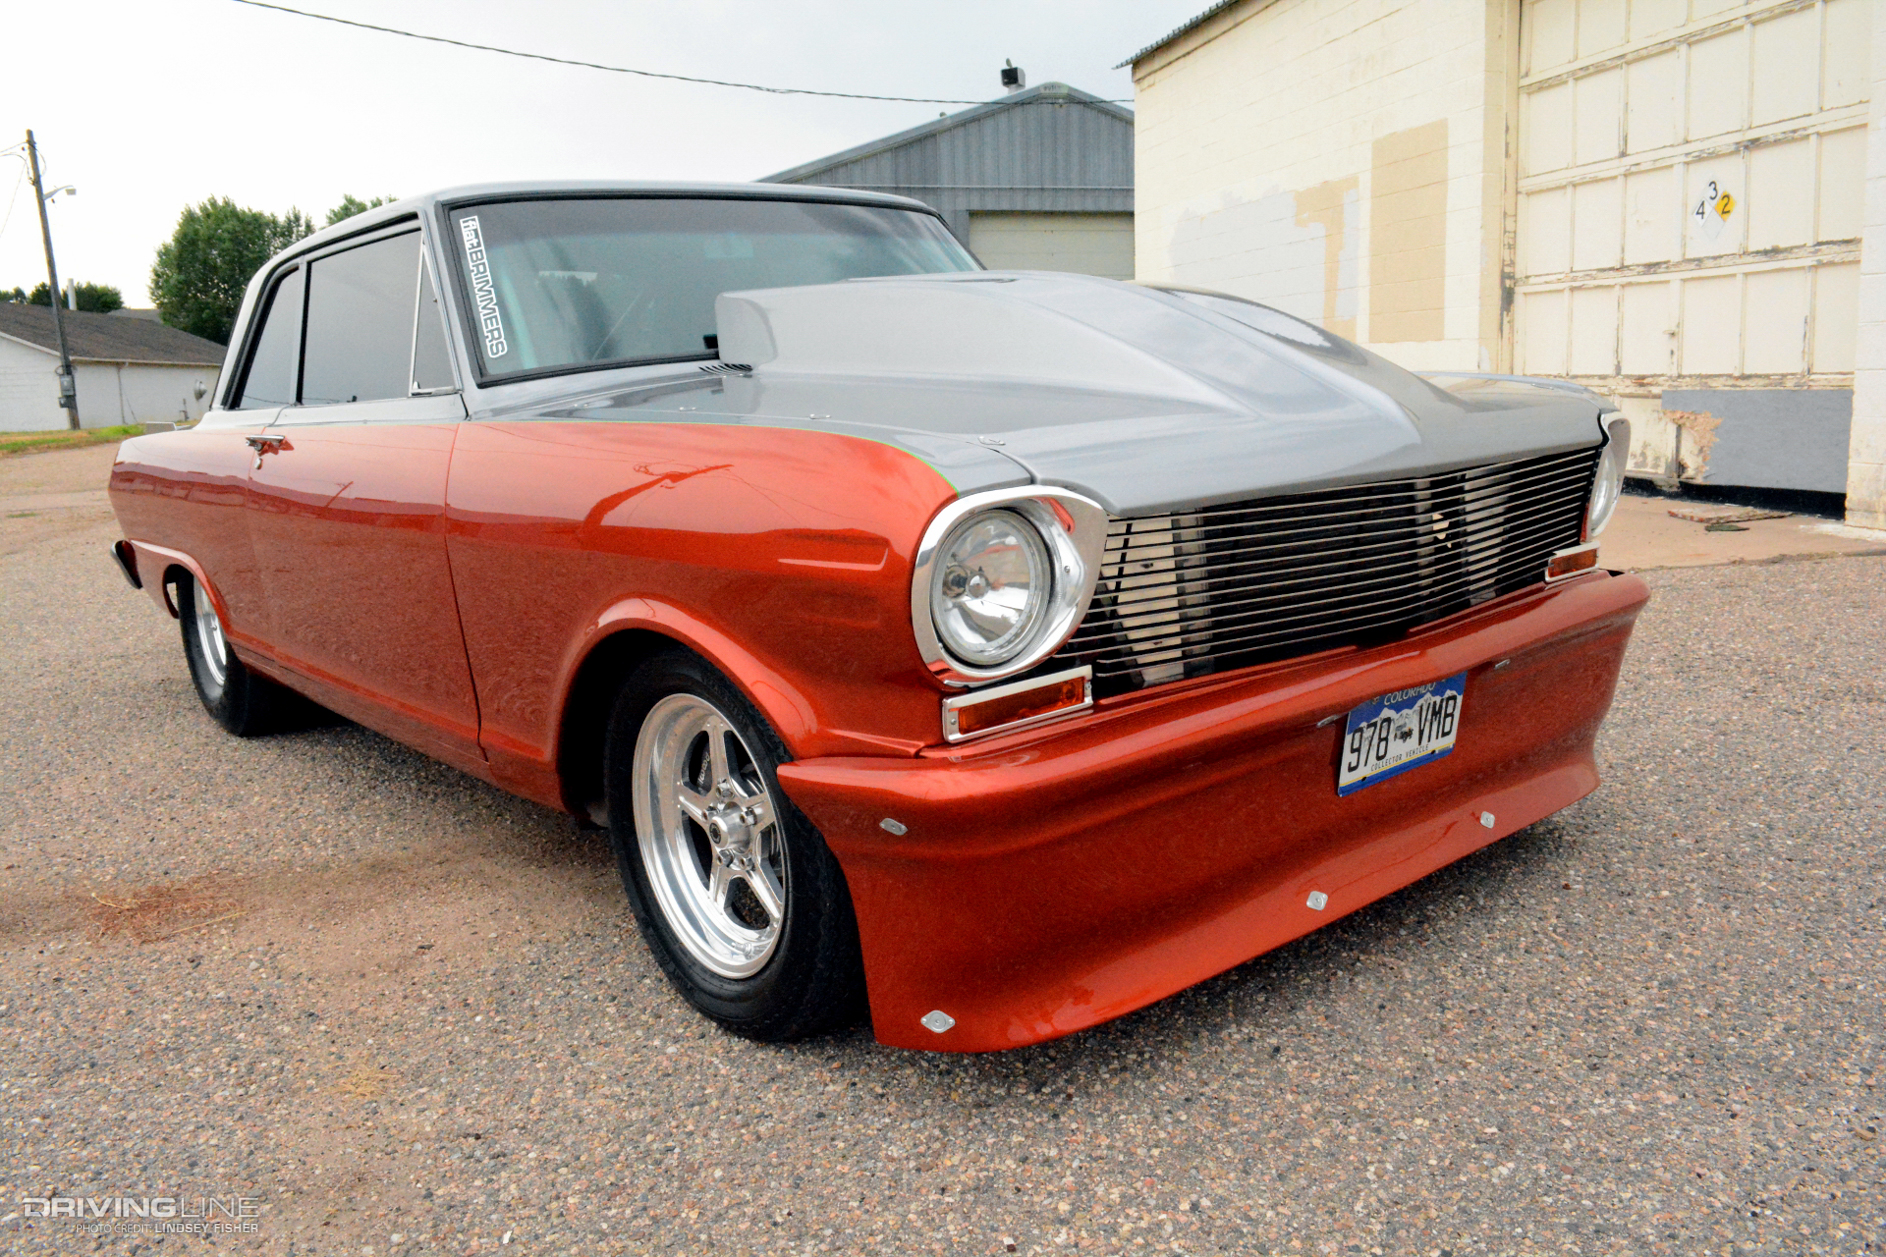 Classic Muscle Modern Chevrolet   Racing Holic MotoCar [click The ...